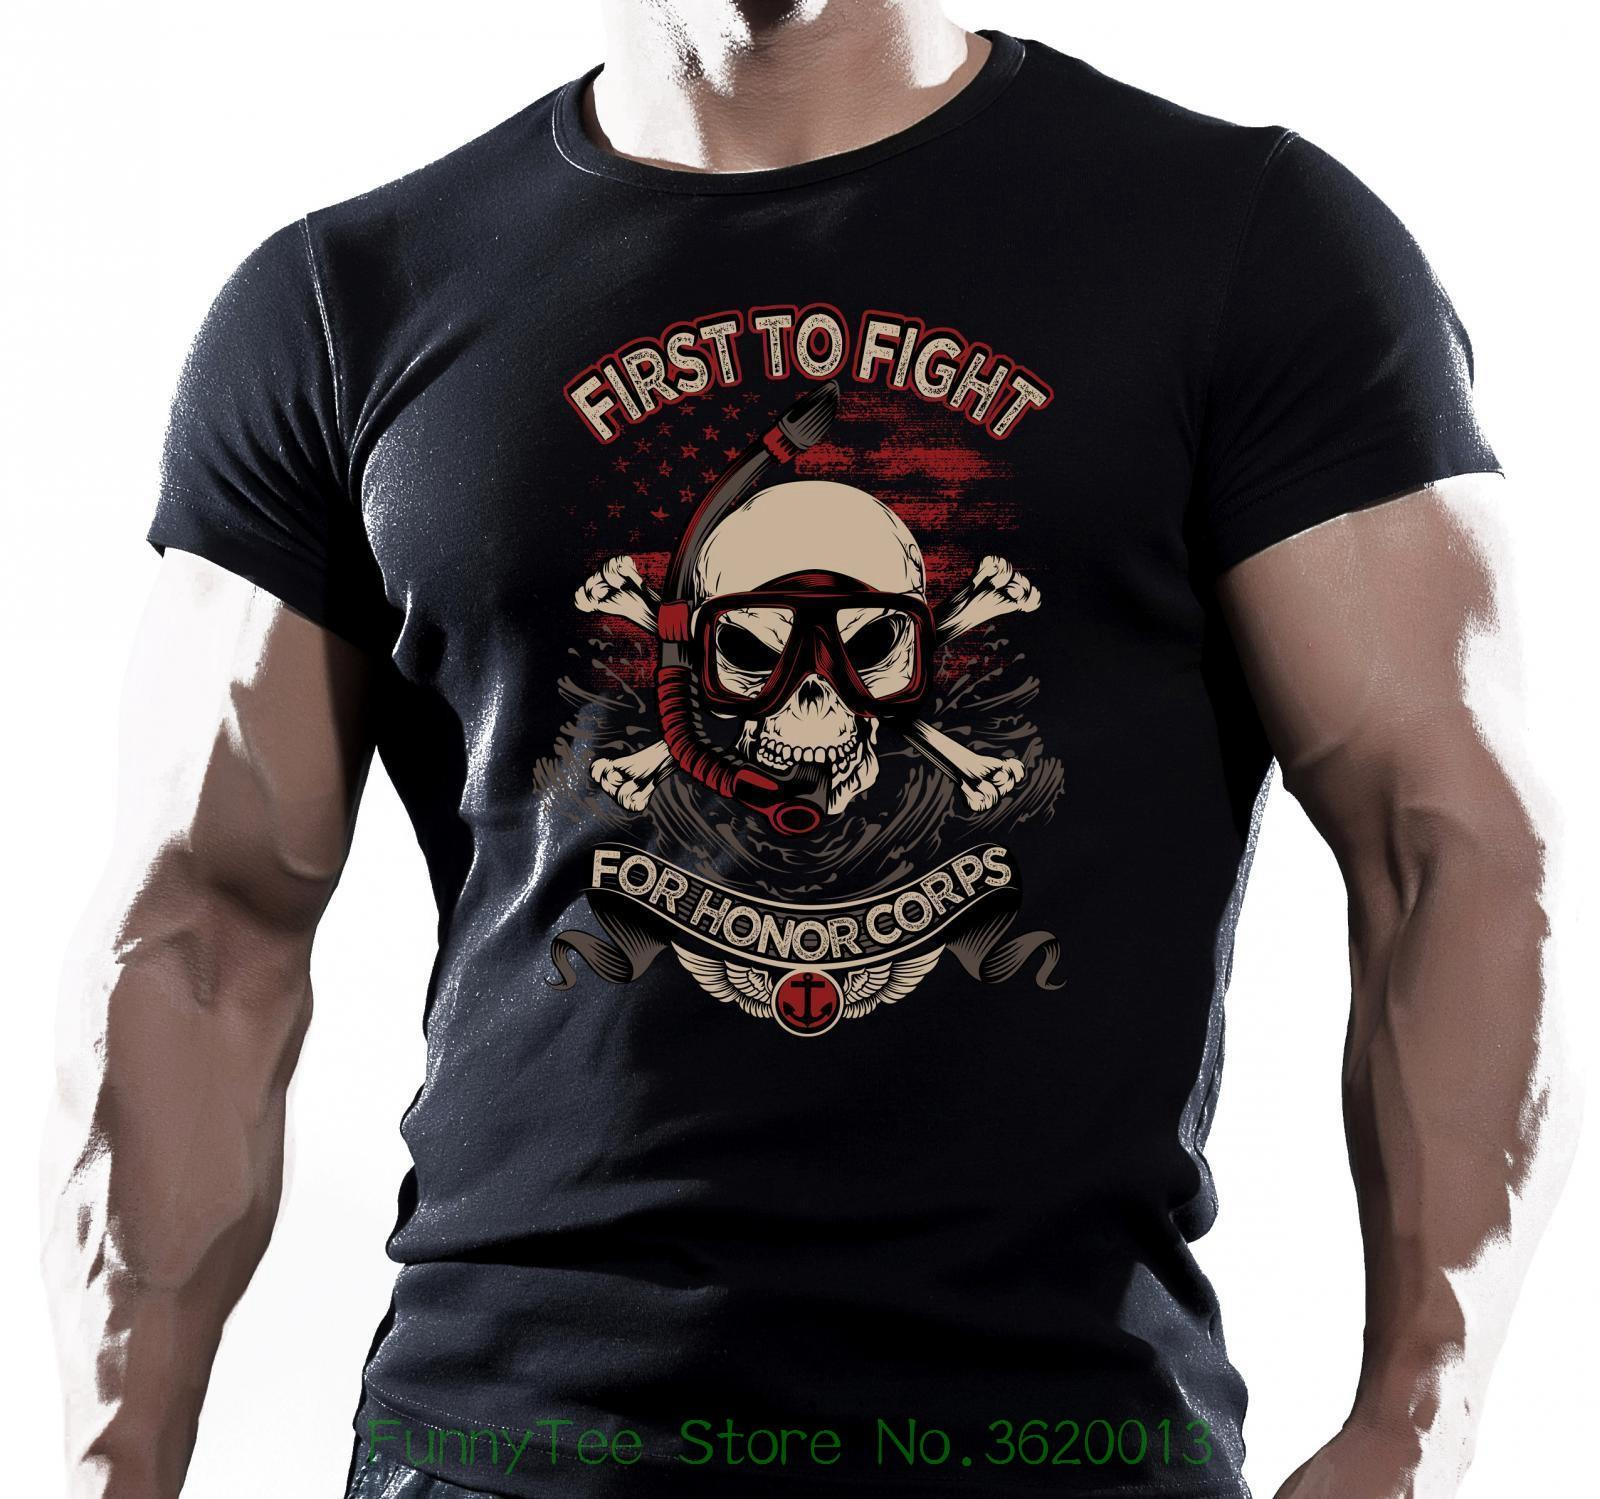 Premier Pour Fighht Us Navy Seal T Shirt Sp Cial Forces Us Marine Tshirt  Designs T Shirt Design Template From Aaa888teesstore ad3c6804bf5